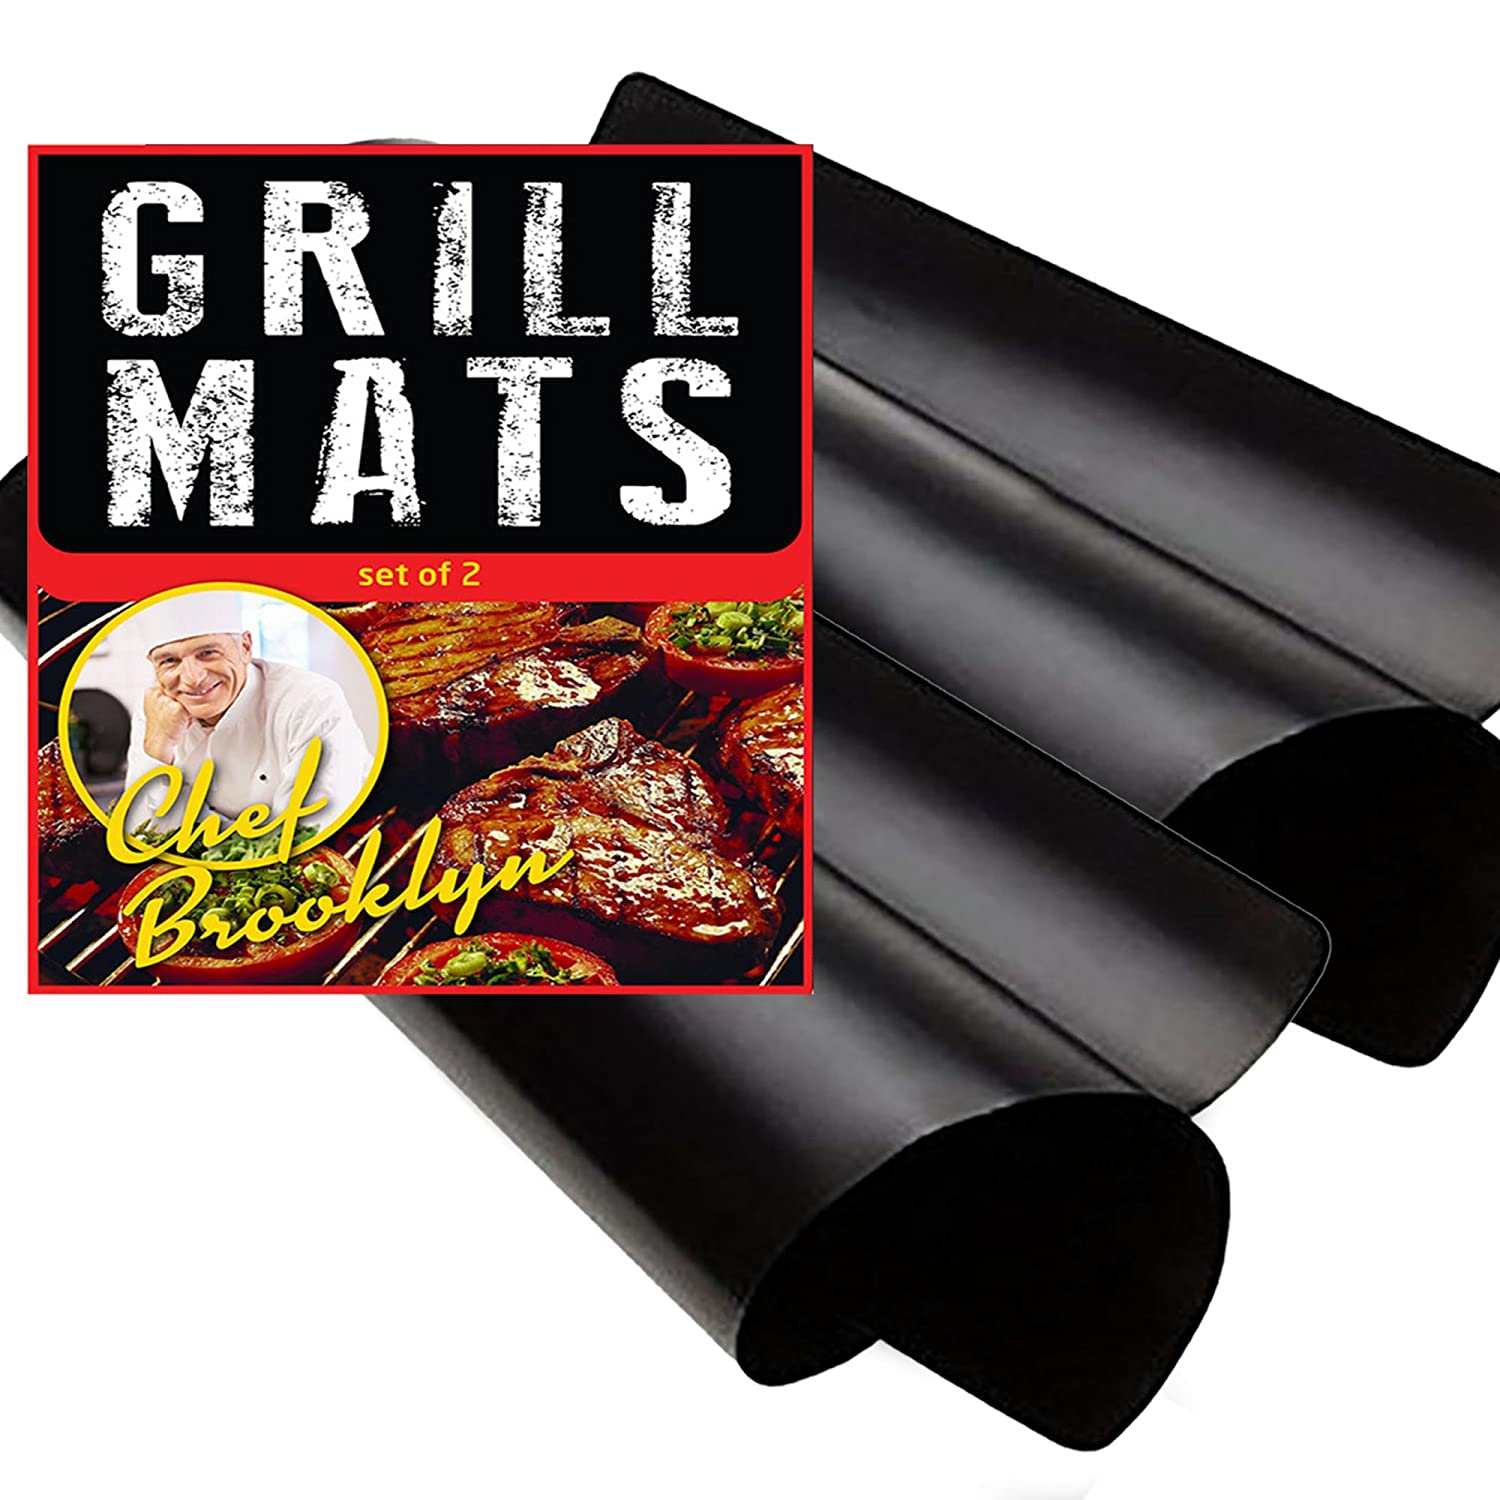 Chef Brooklyn Set of 2 BBQ Grill Mats 13×16 Inch FDA Approved with No PFOA Great Stocking Stuffer for Dads and Fathers